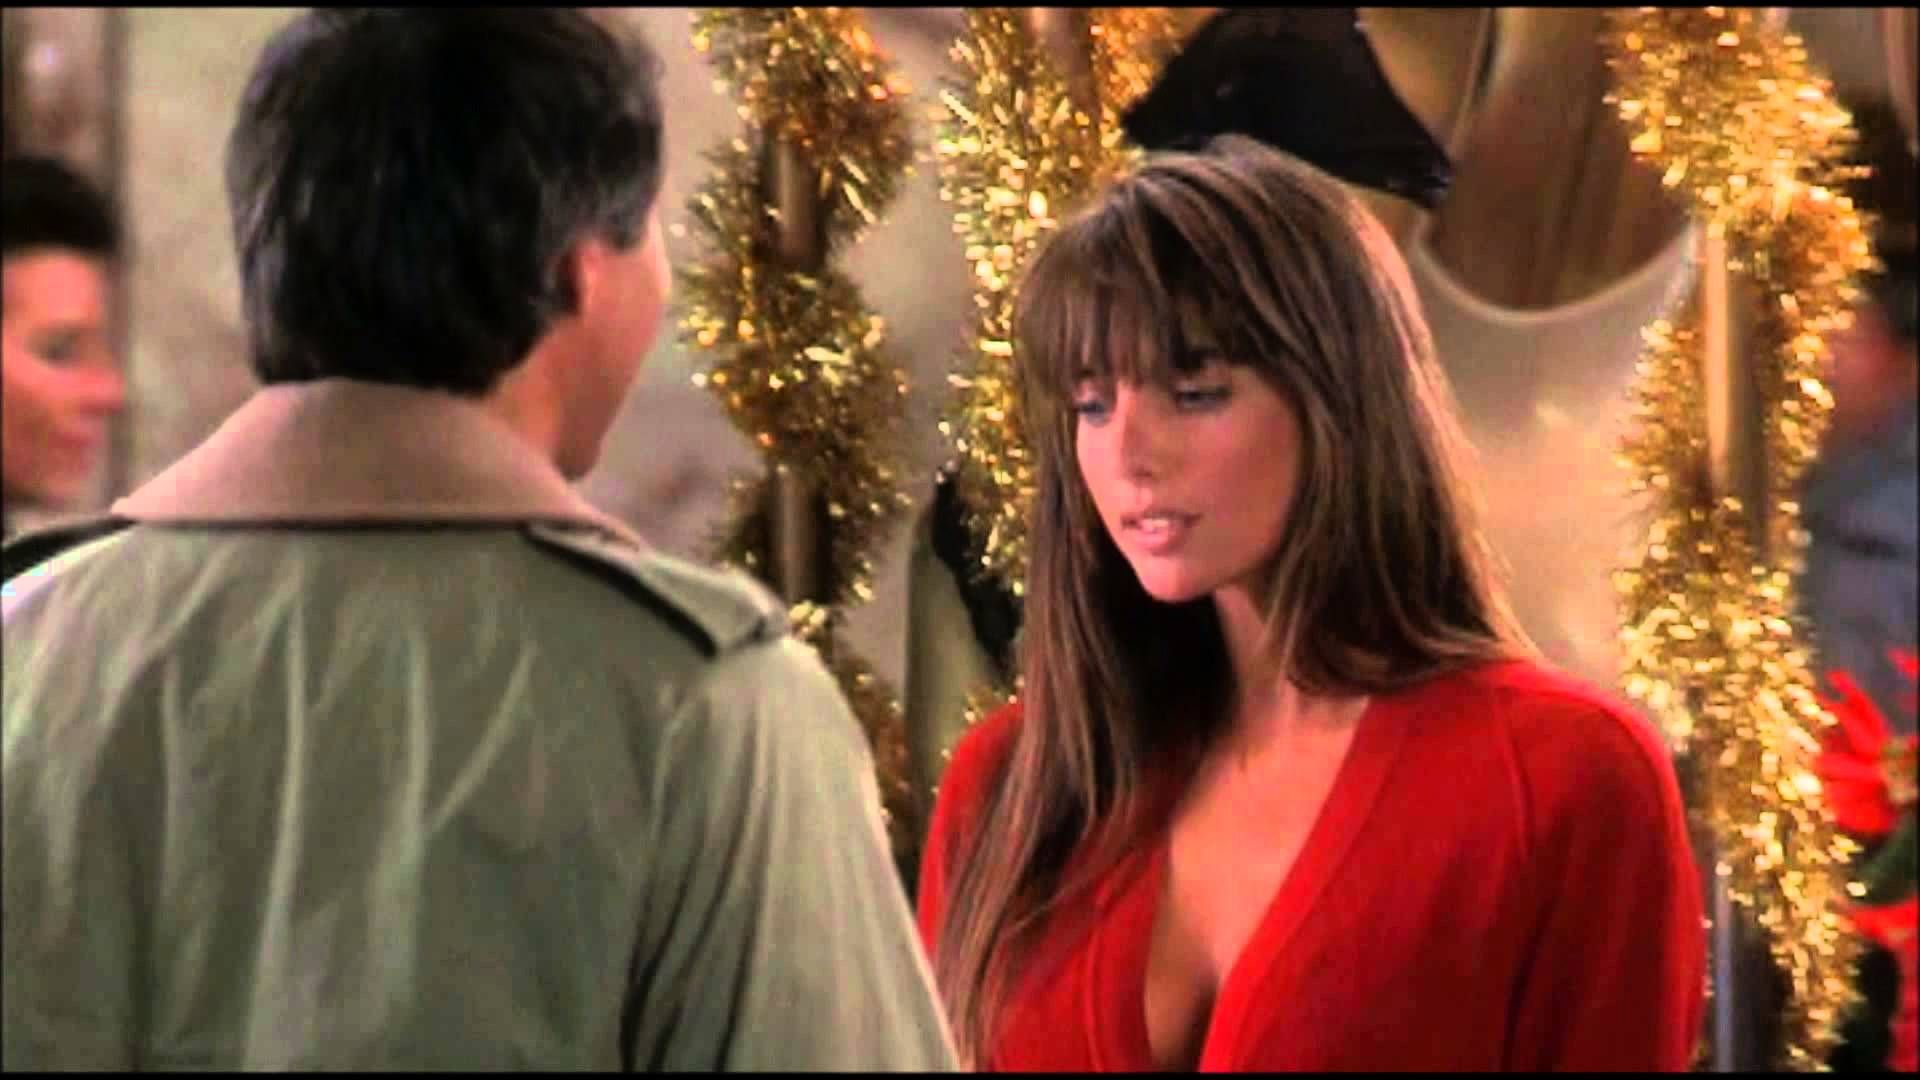 best movie flirt scenes from a mall